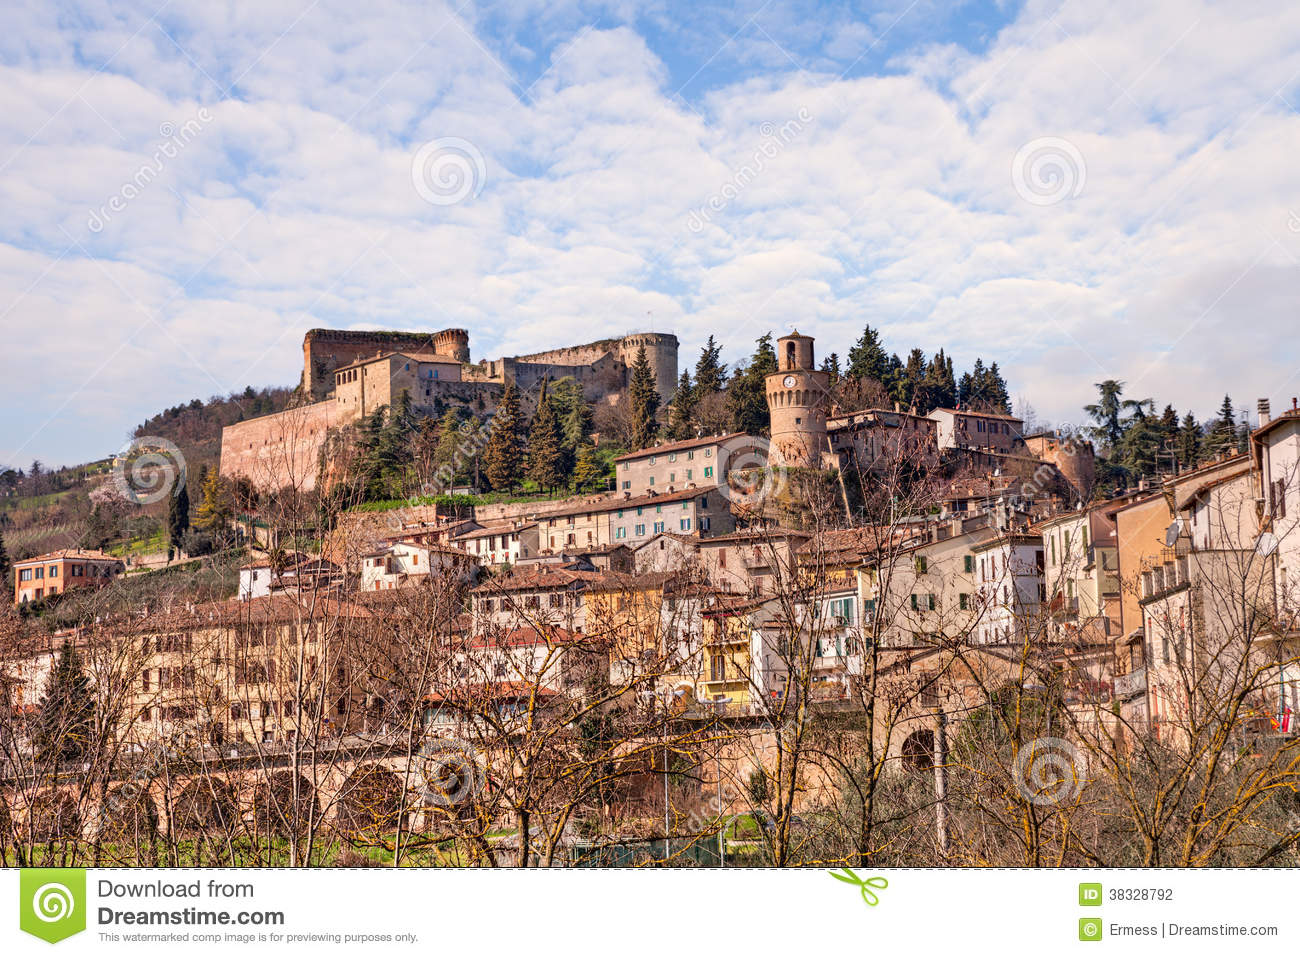 Castrocaro Terme Italy  city images : Cityscape Of The Little Town Castrocaro Terme, Italy Stock Photography ...